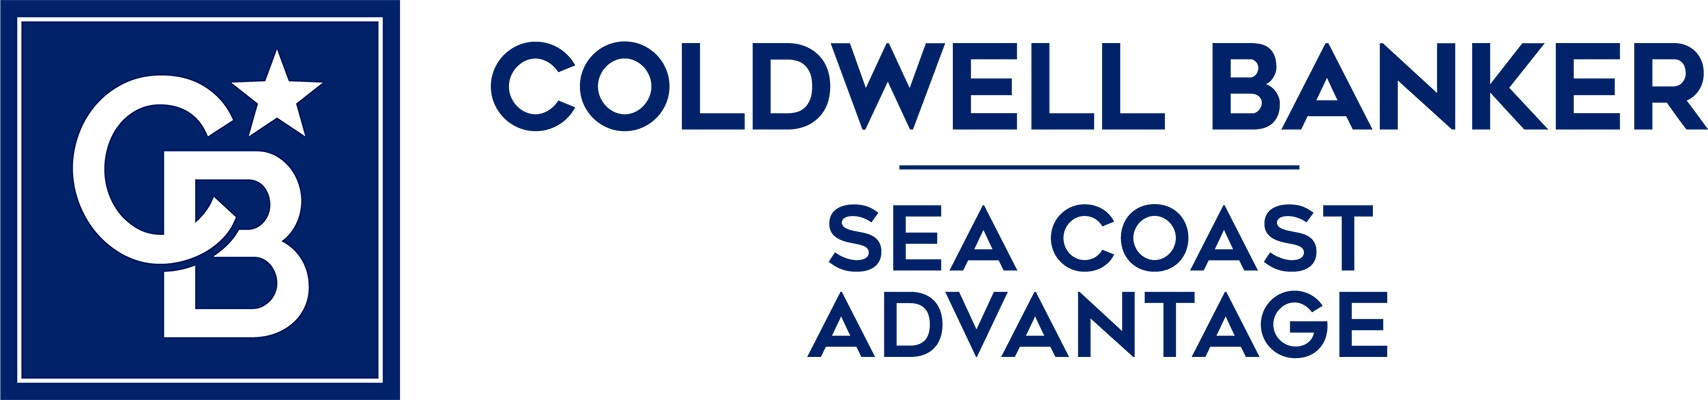 Melody Williams - Coldwell Banker Sea Coast Advantage Realty